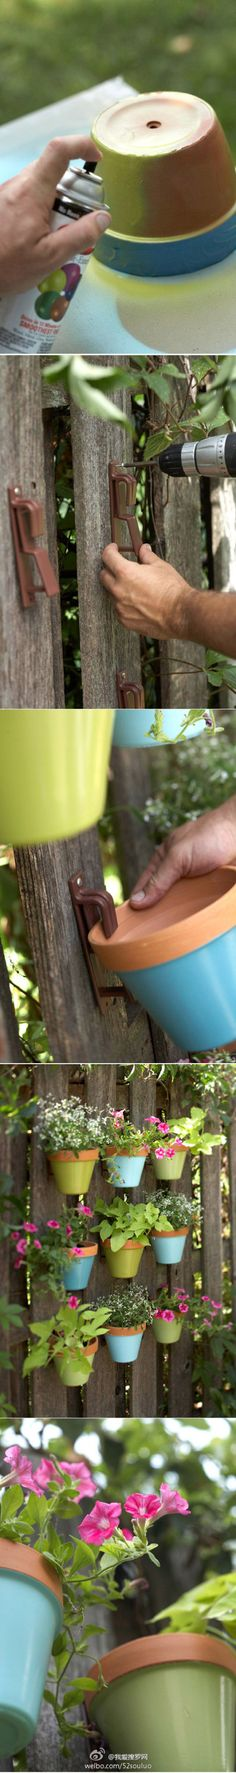 how to hang pots on a vertical surface.